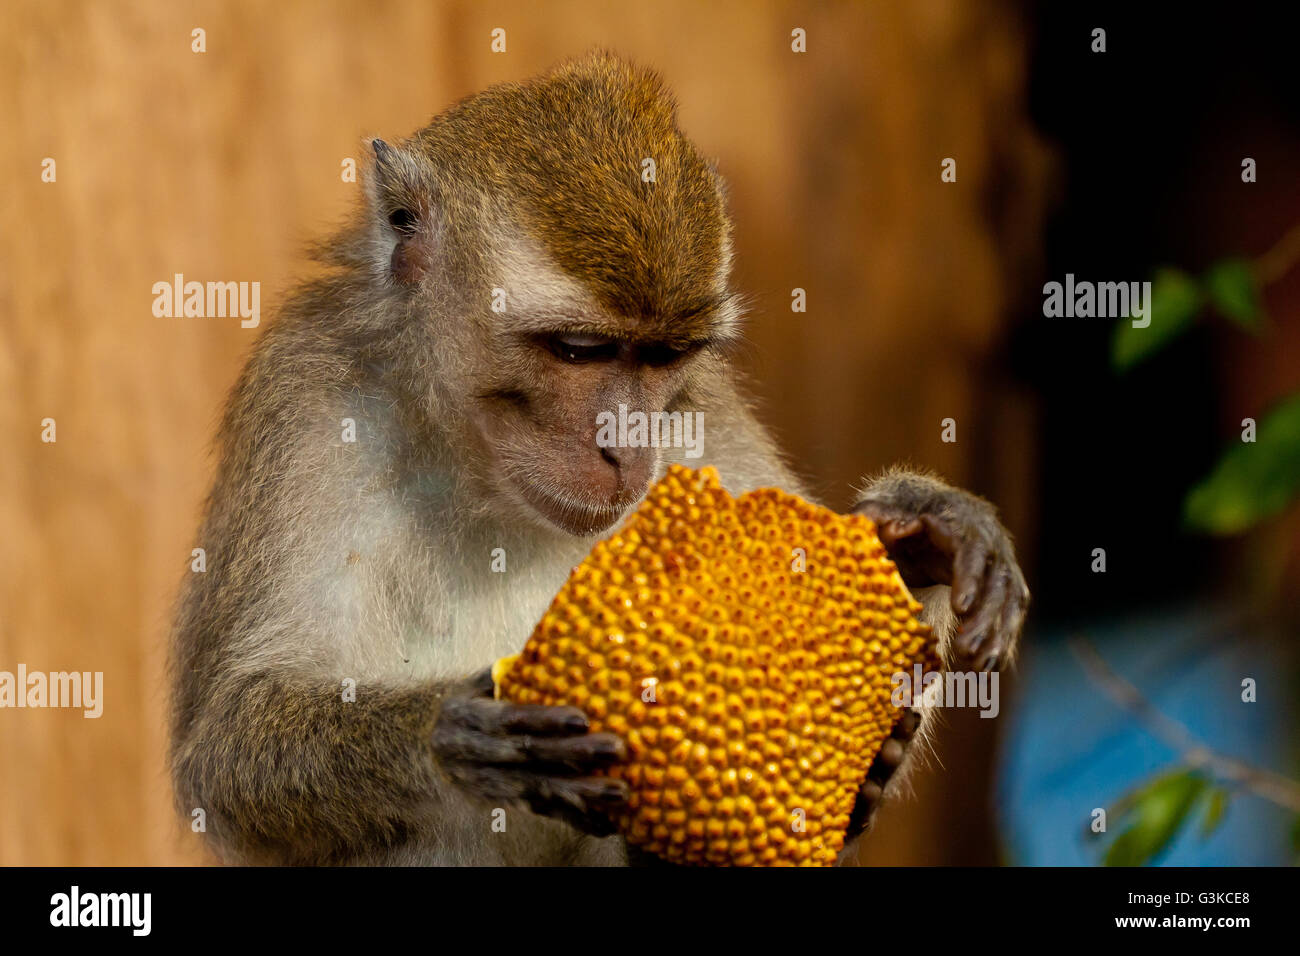 Wildlife monkey eats jackfruit - Stock Image